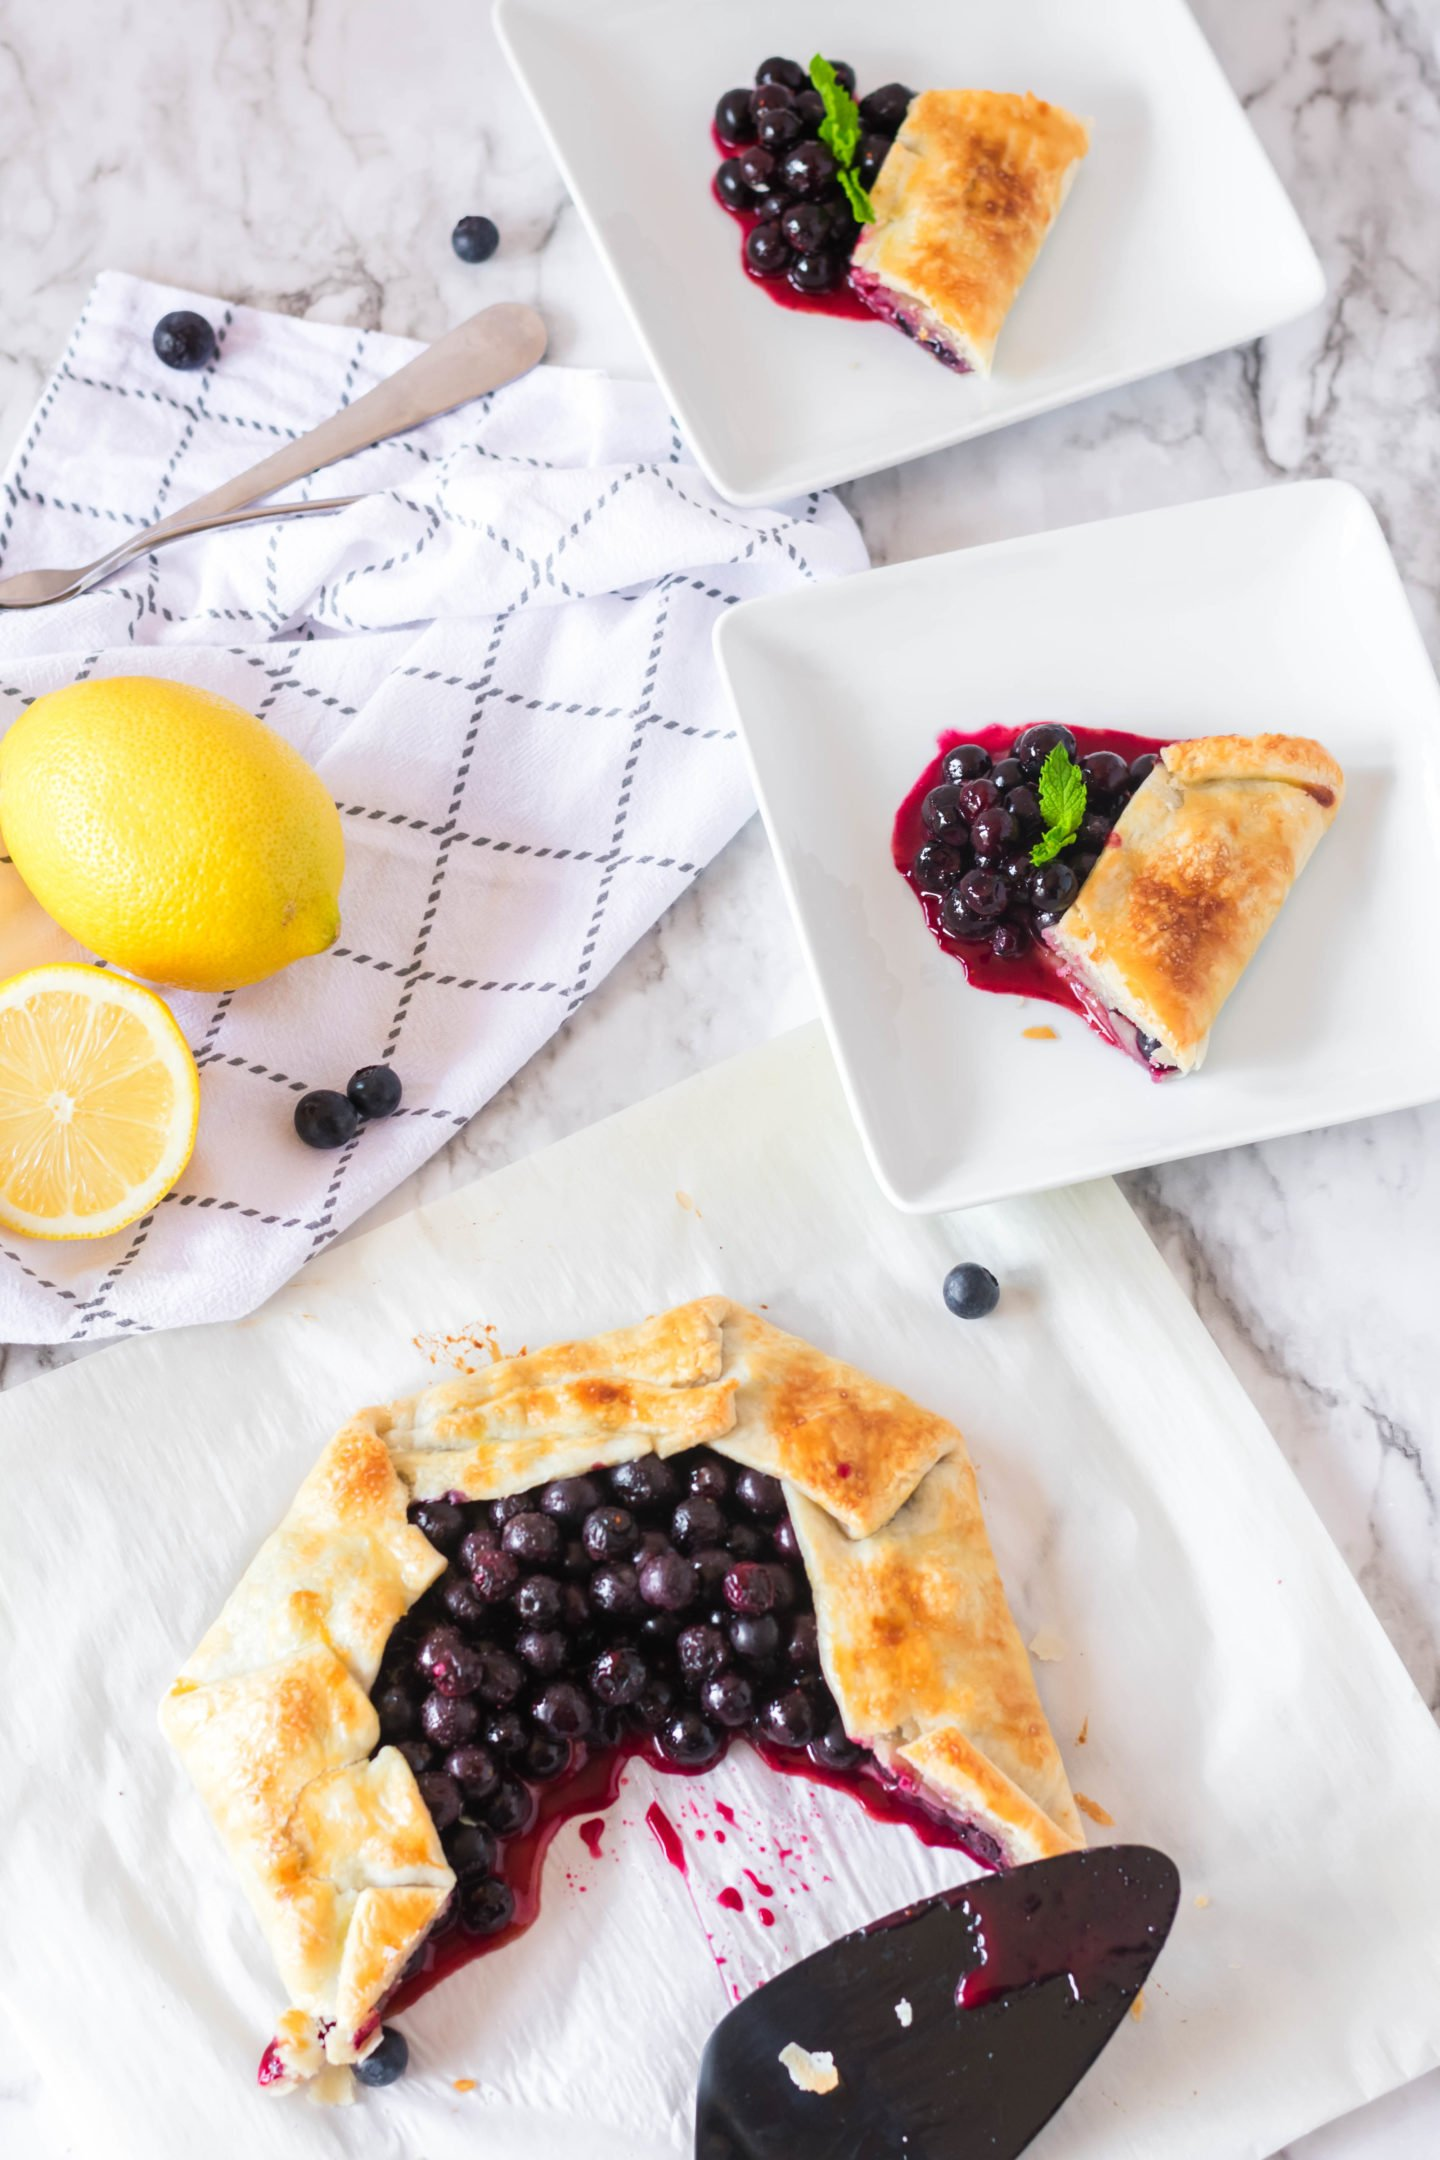 Rustic fresh blueberry tart served up on dishes for sharing.